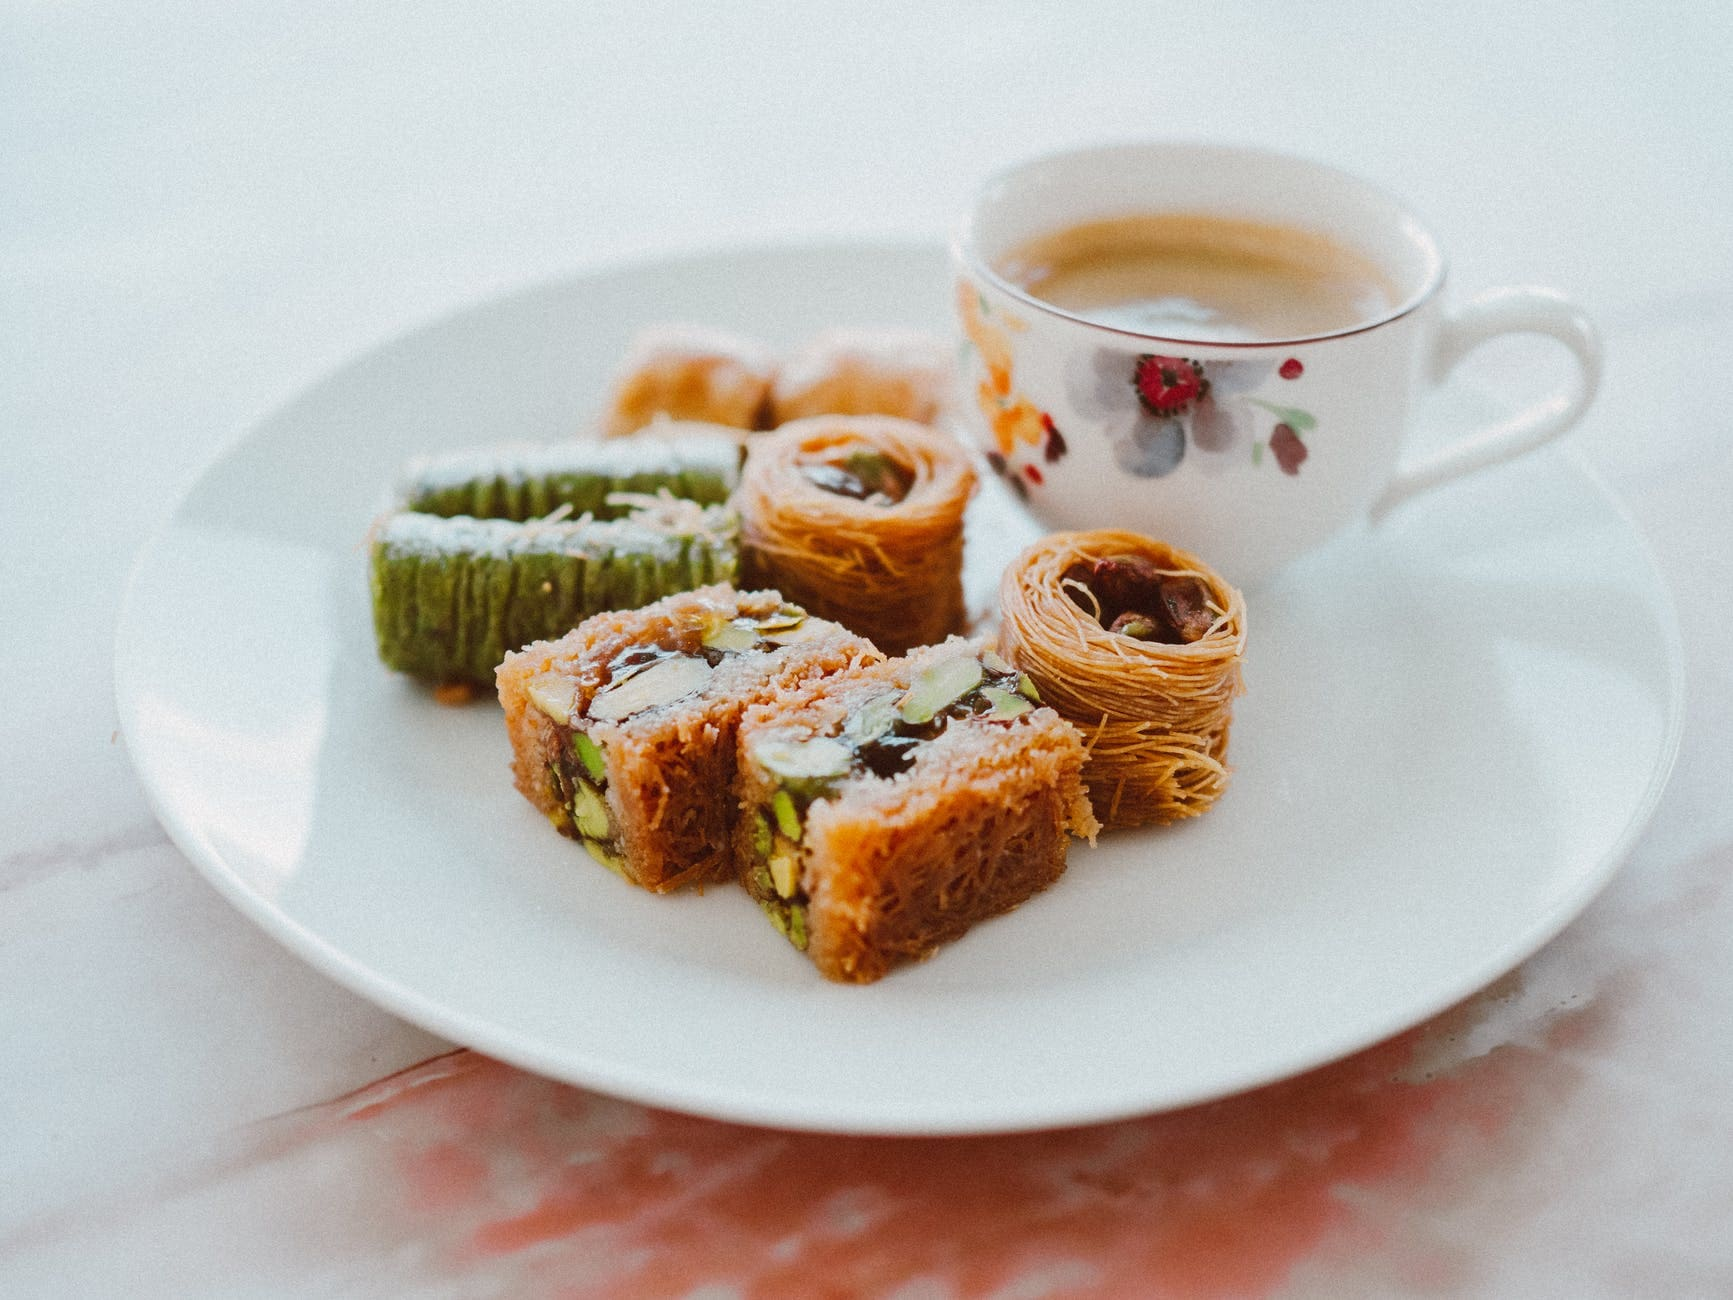 Method of action of Turkish cold baklava